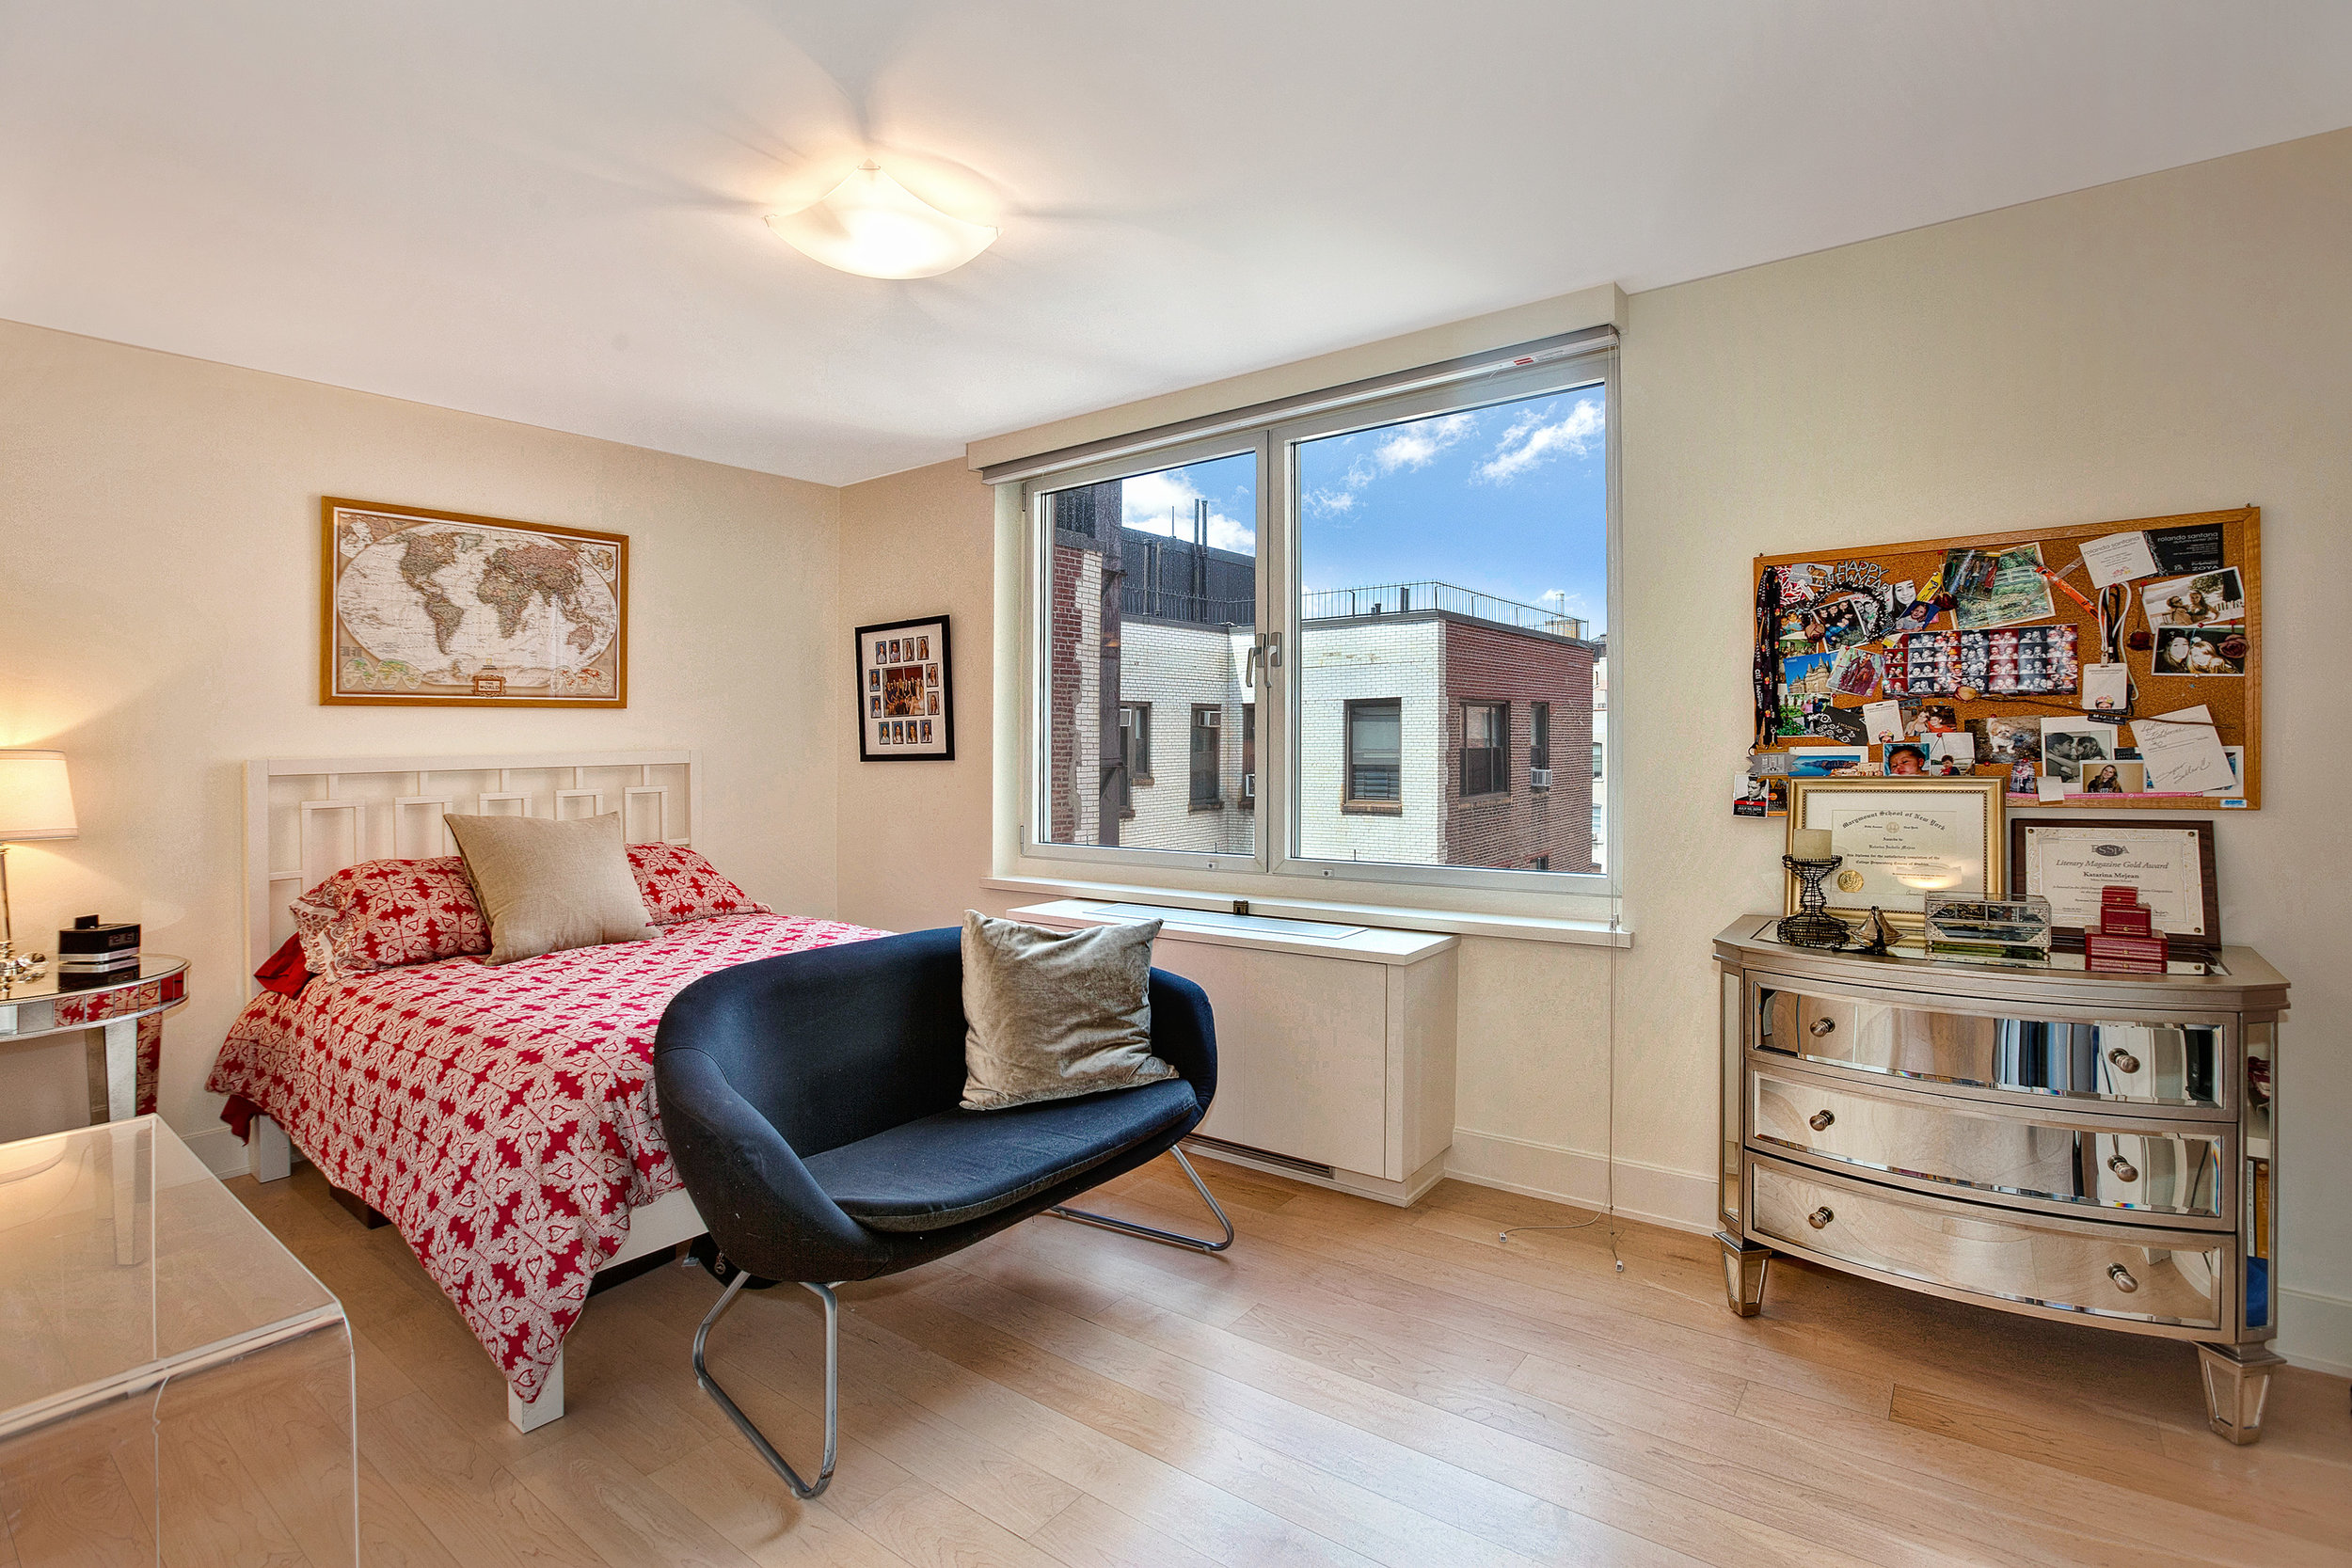 250West90thStreet17K_Dylan_Hildreth-Hoffman_DouglasElliman_Photography_28828800_high_res.jpg